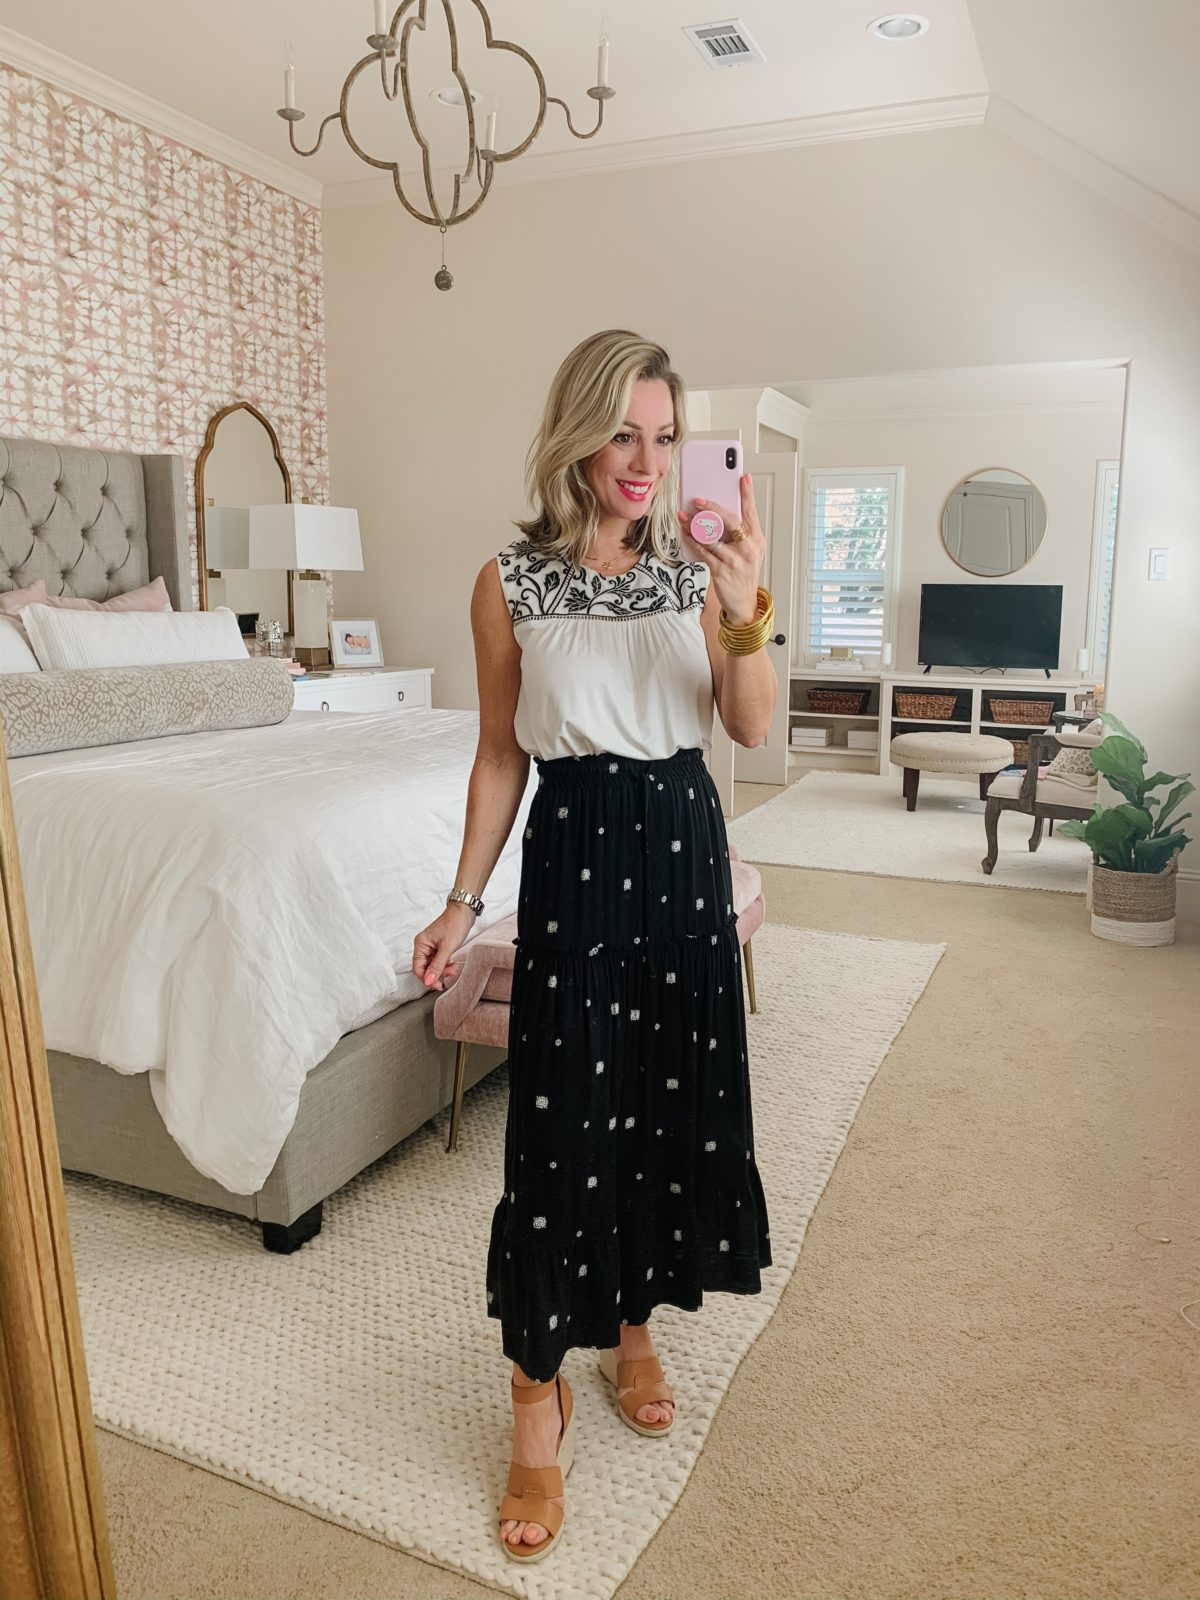 White Top Gibson, Black Maxi Skirt Gibson, Wedges